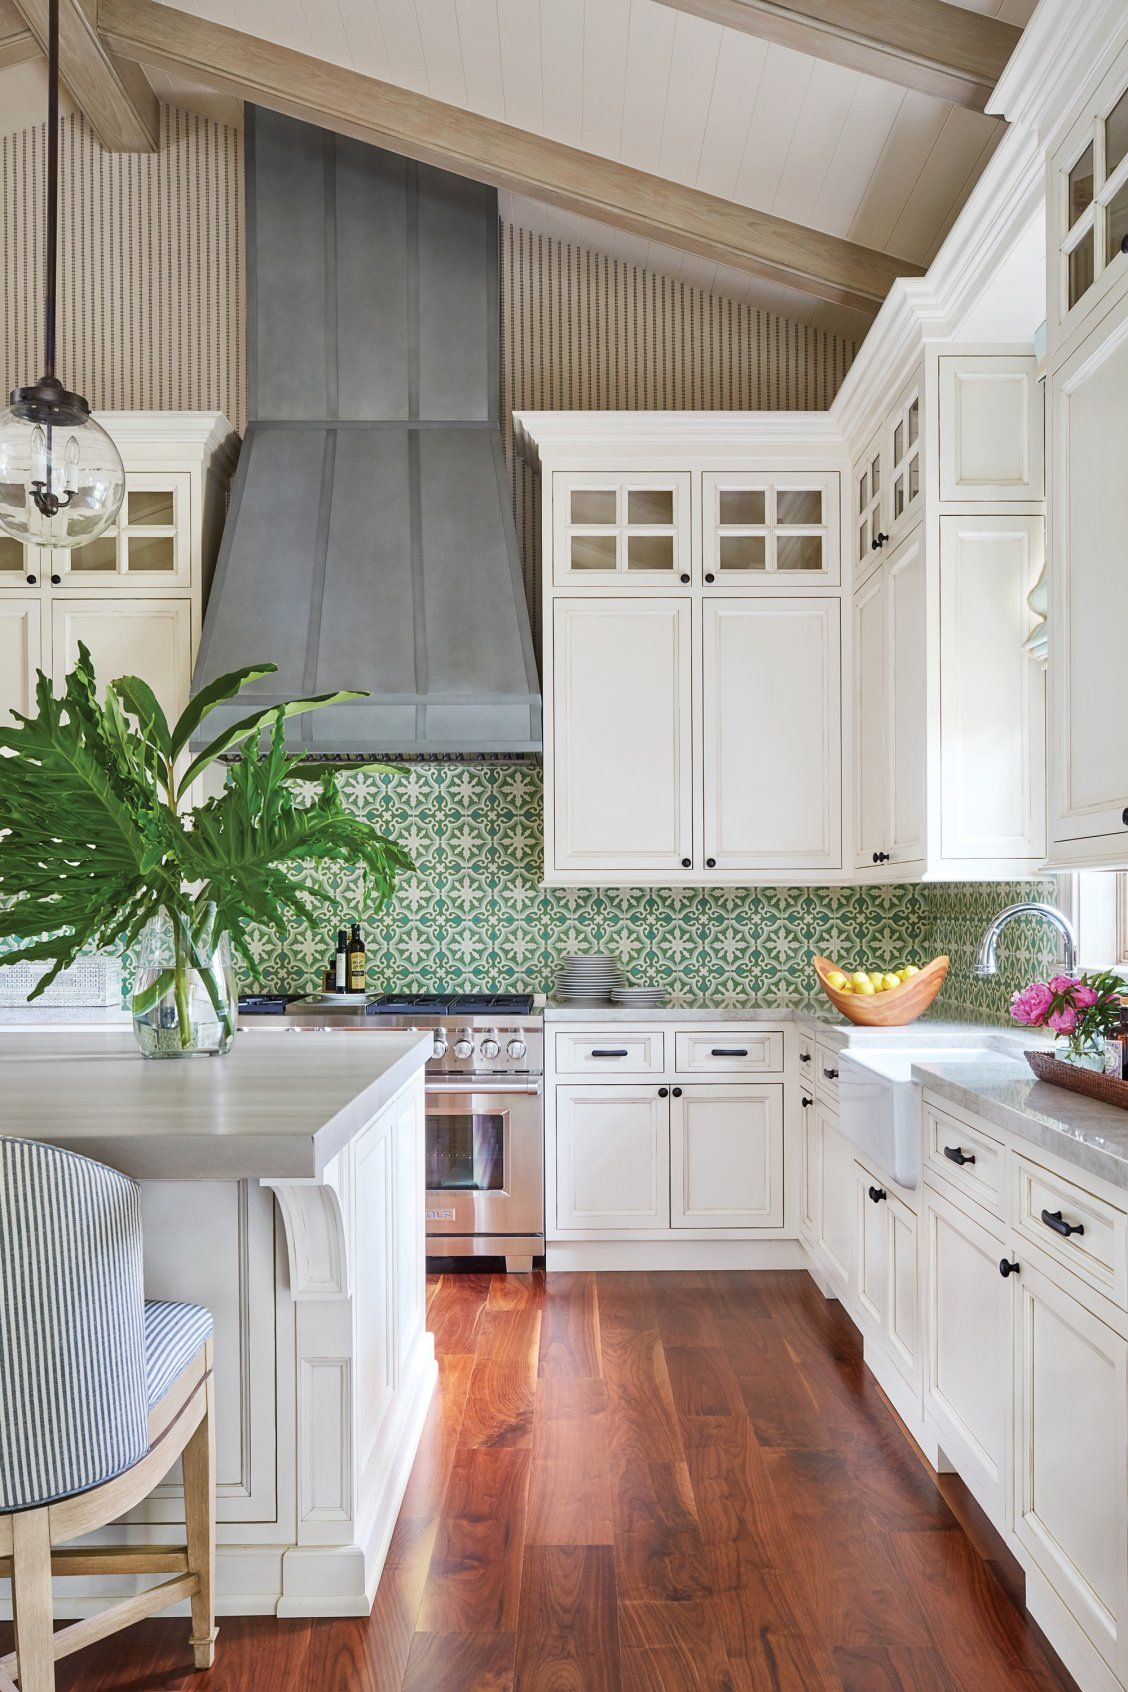 This New Palm Beach House Is Bursting With Old Florida Charm #prettypatterns